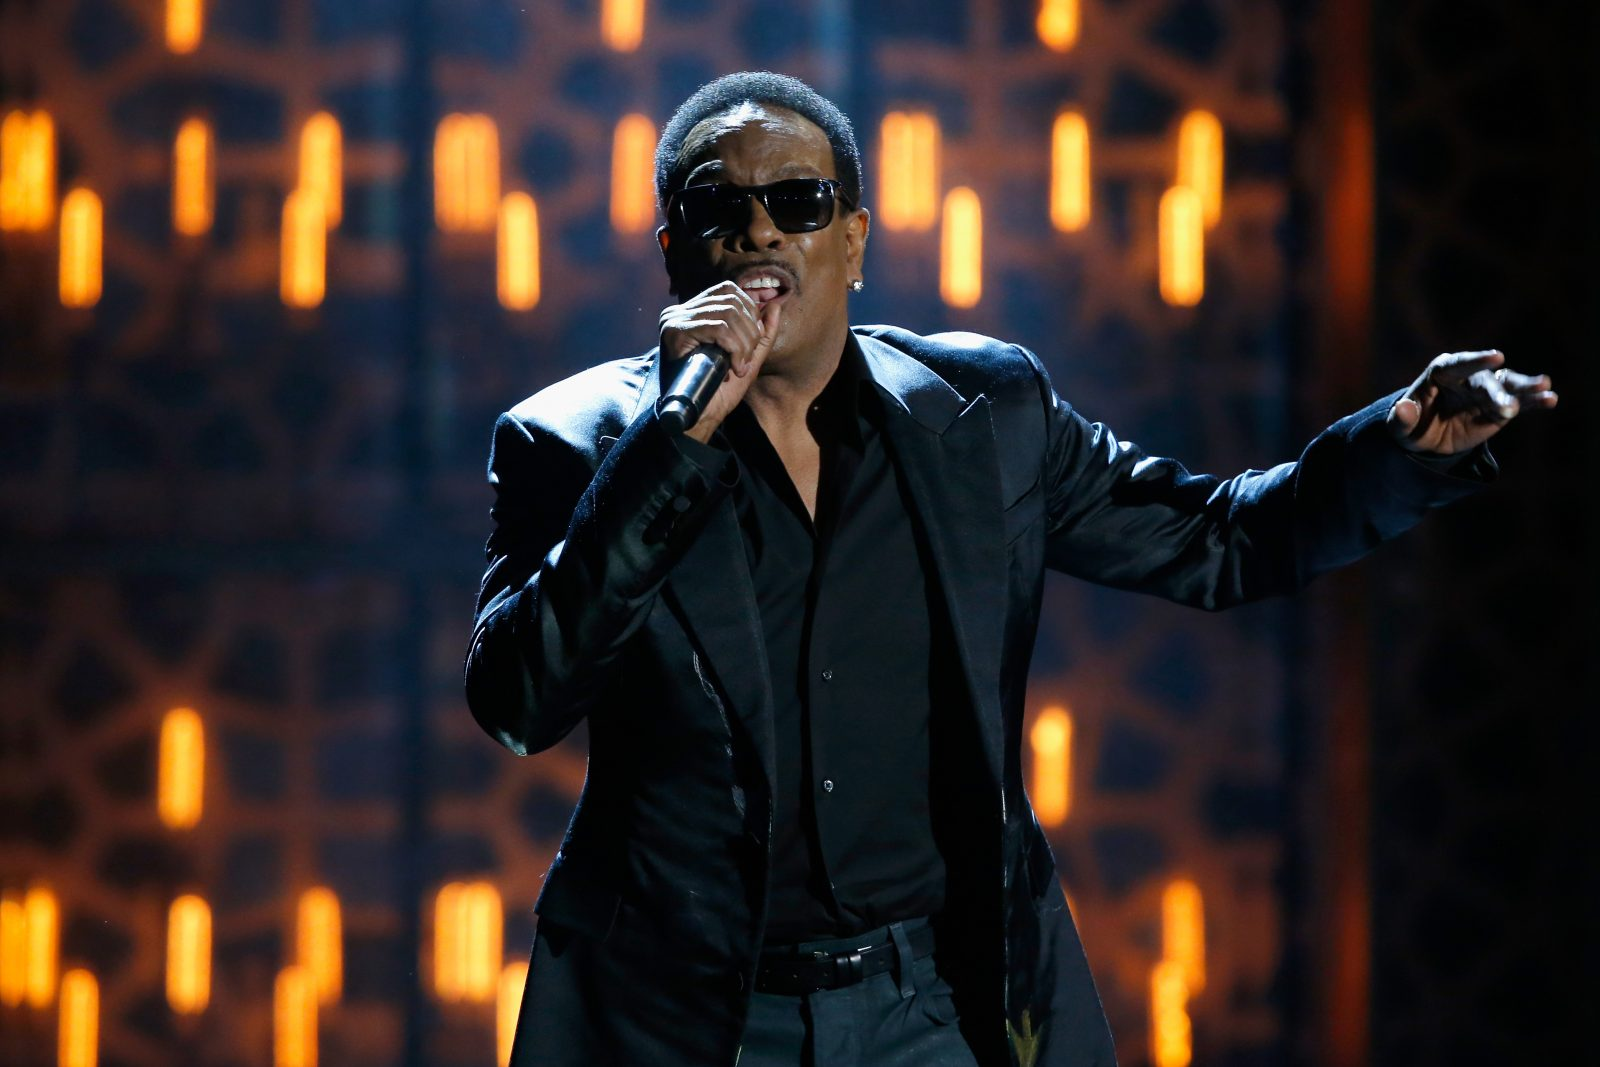 Charlie Wilson headlines a concert Feb. 11 at KeyBank Center. (Getty Images)